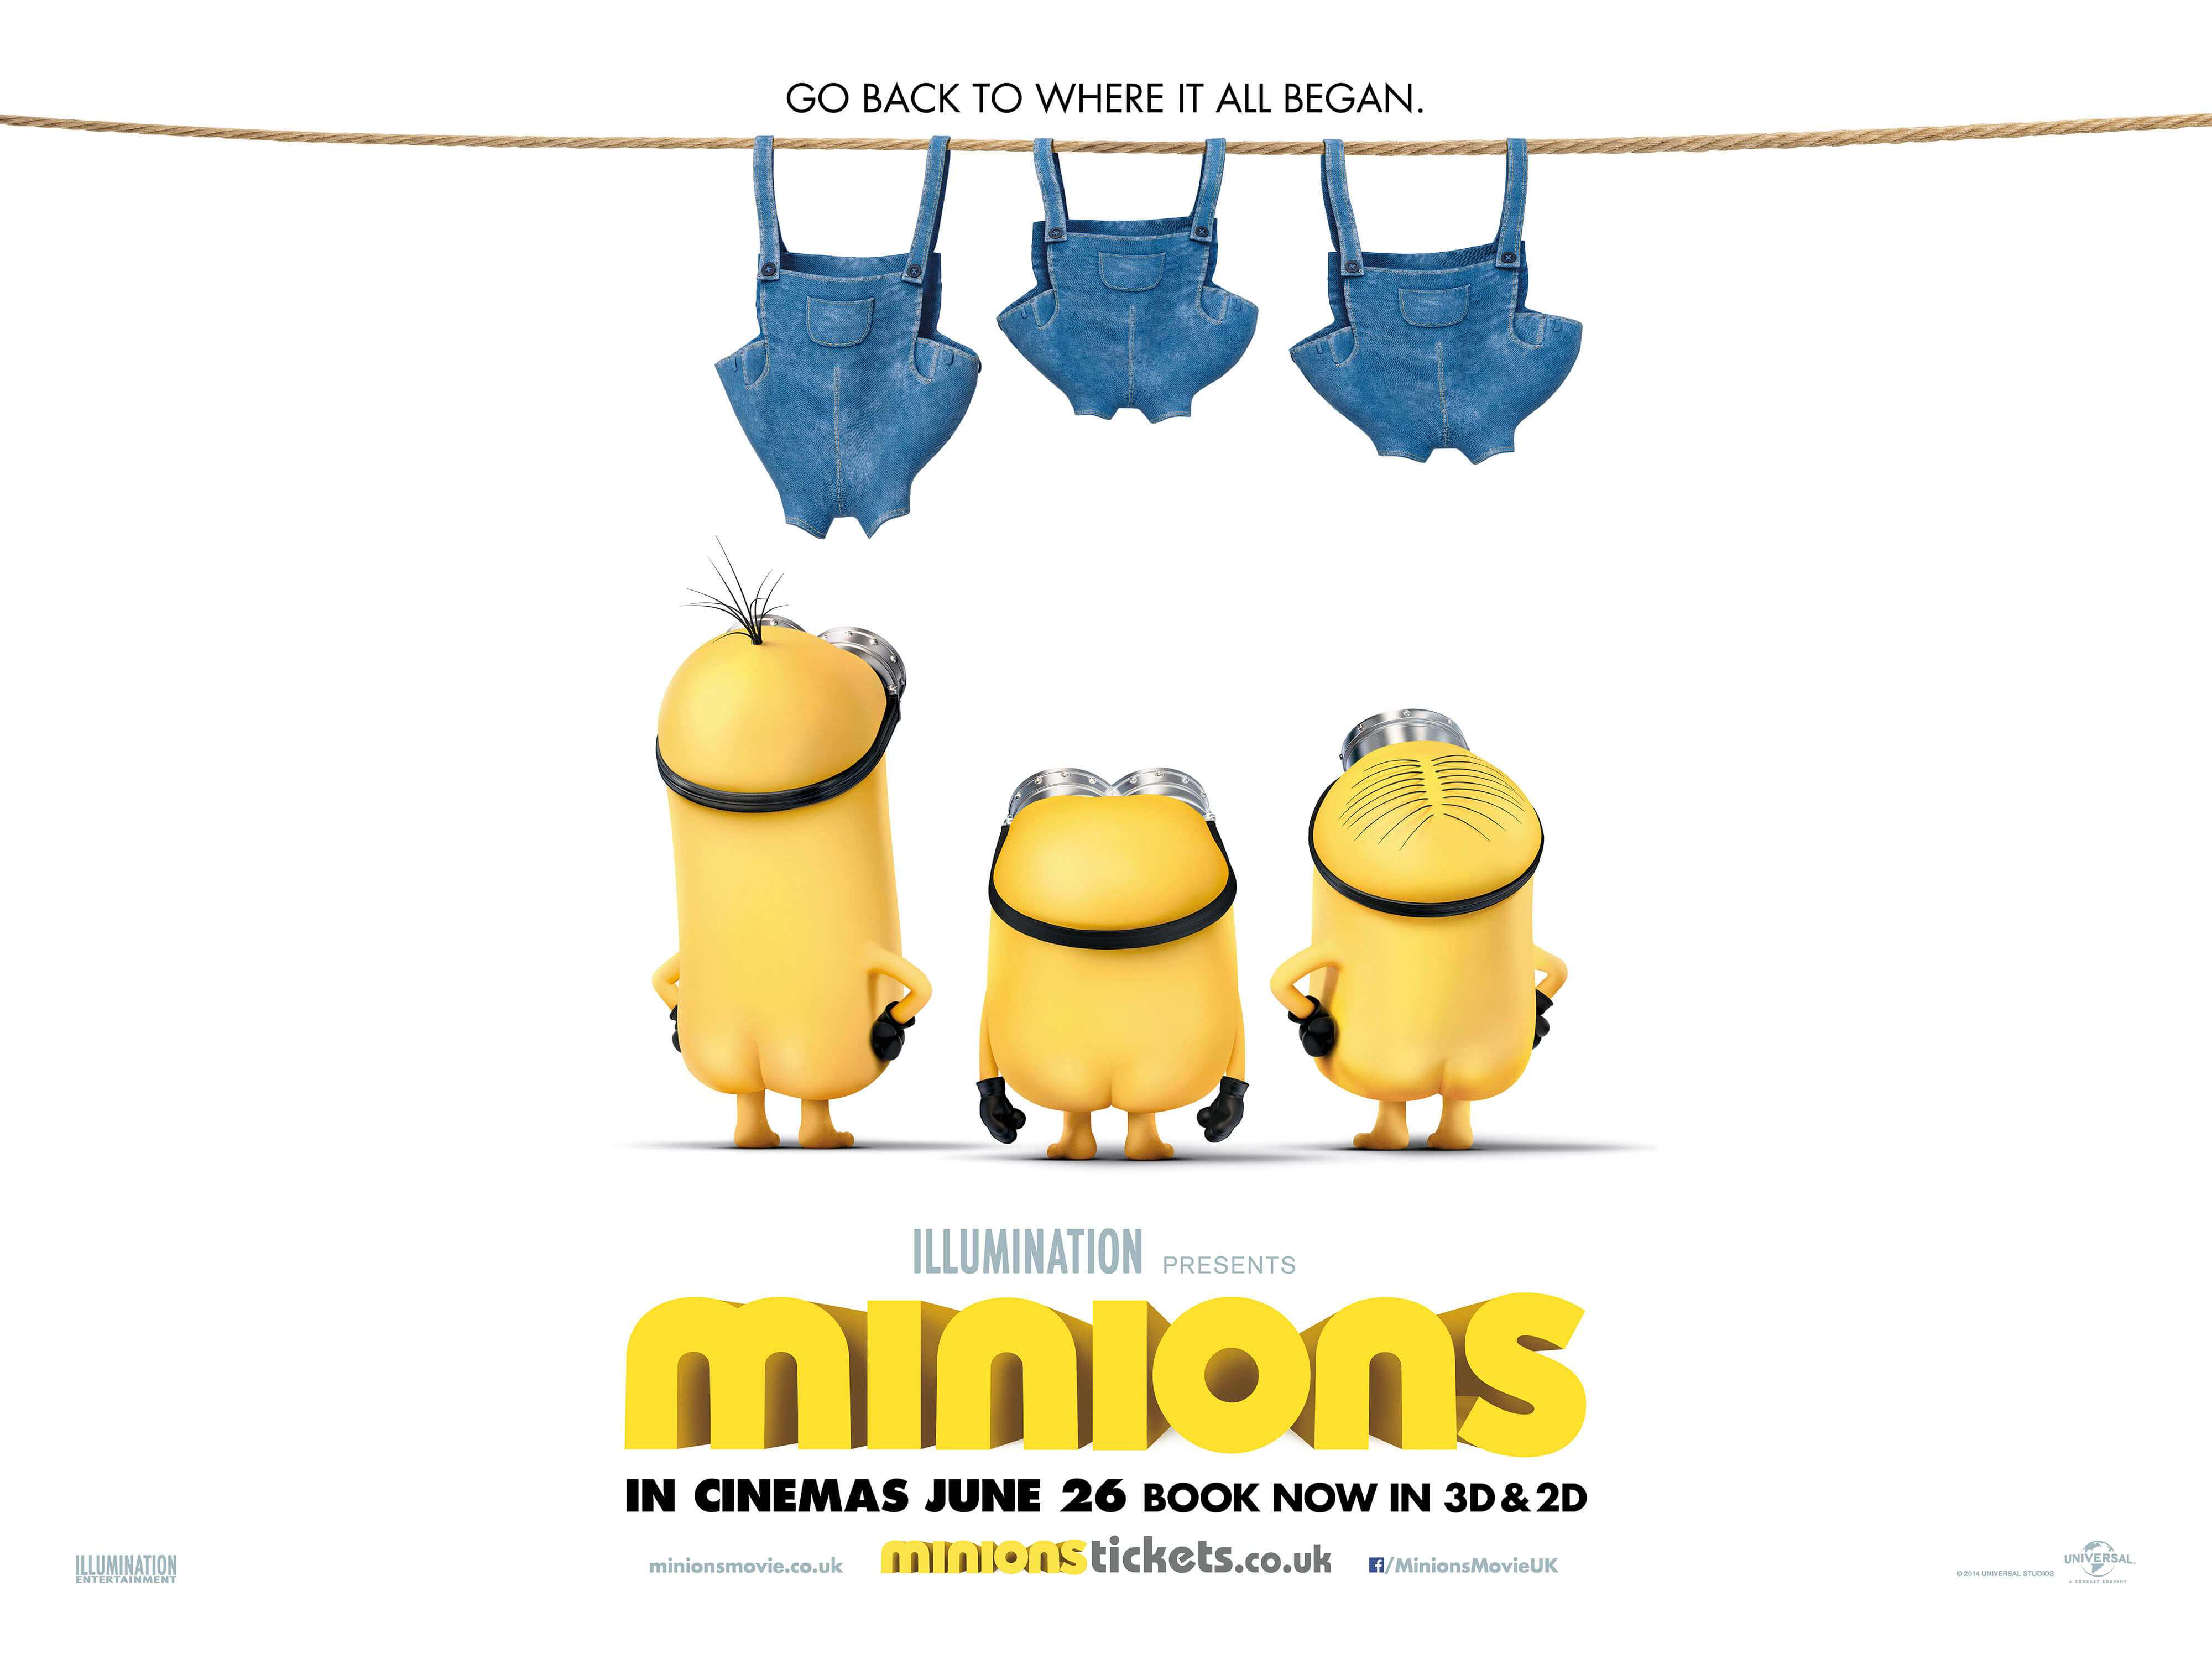 Minions has become the second biggest animation movie of all time TheFuss.co.uk